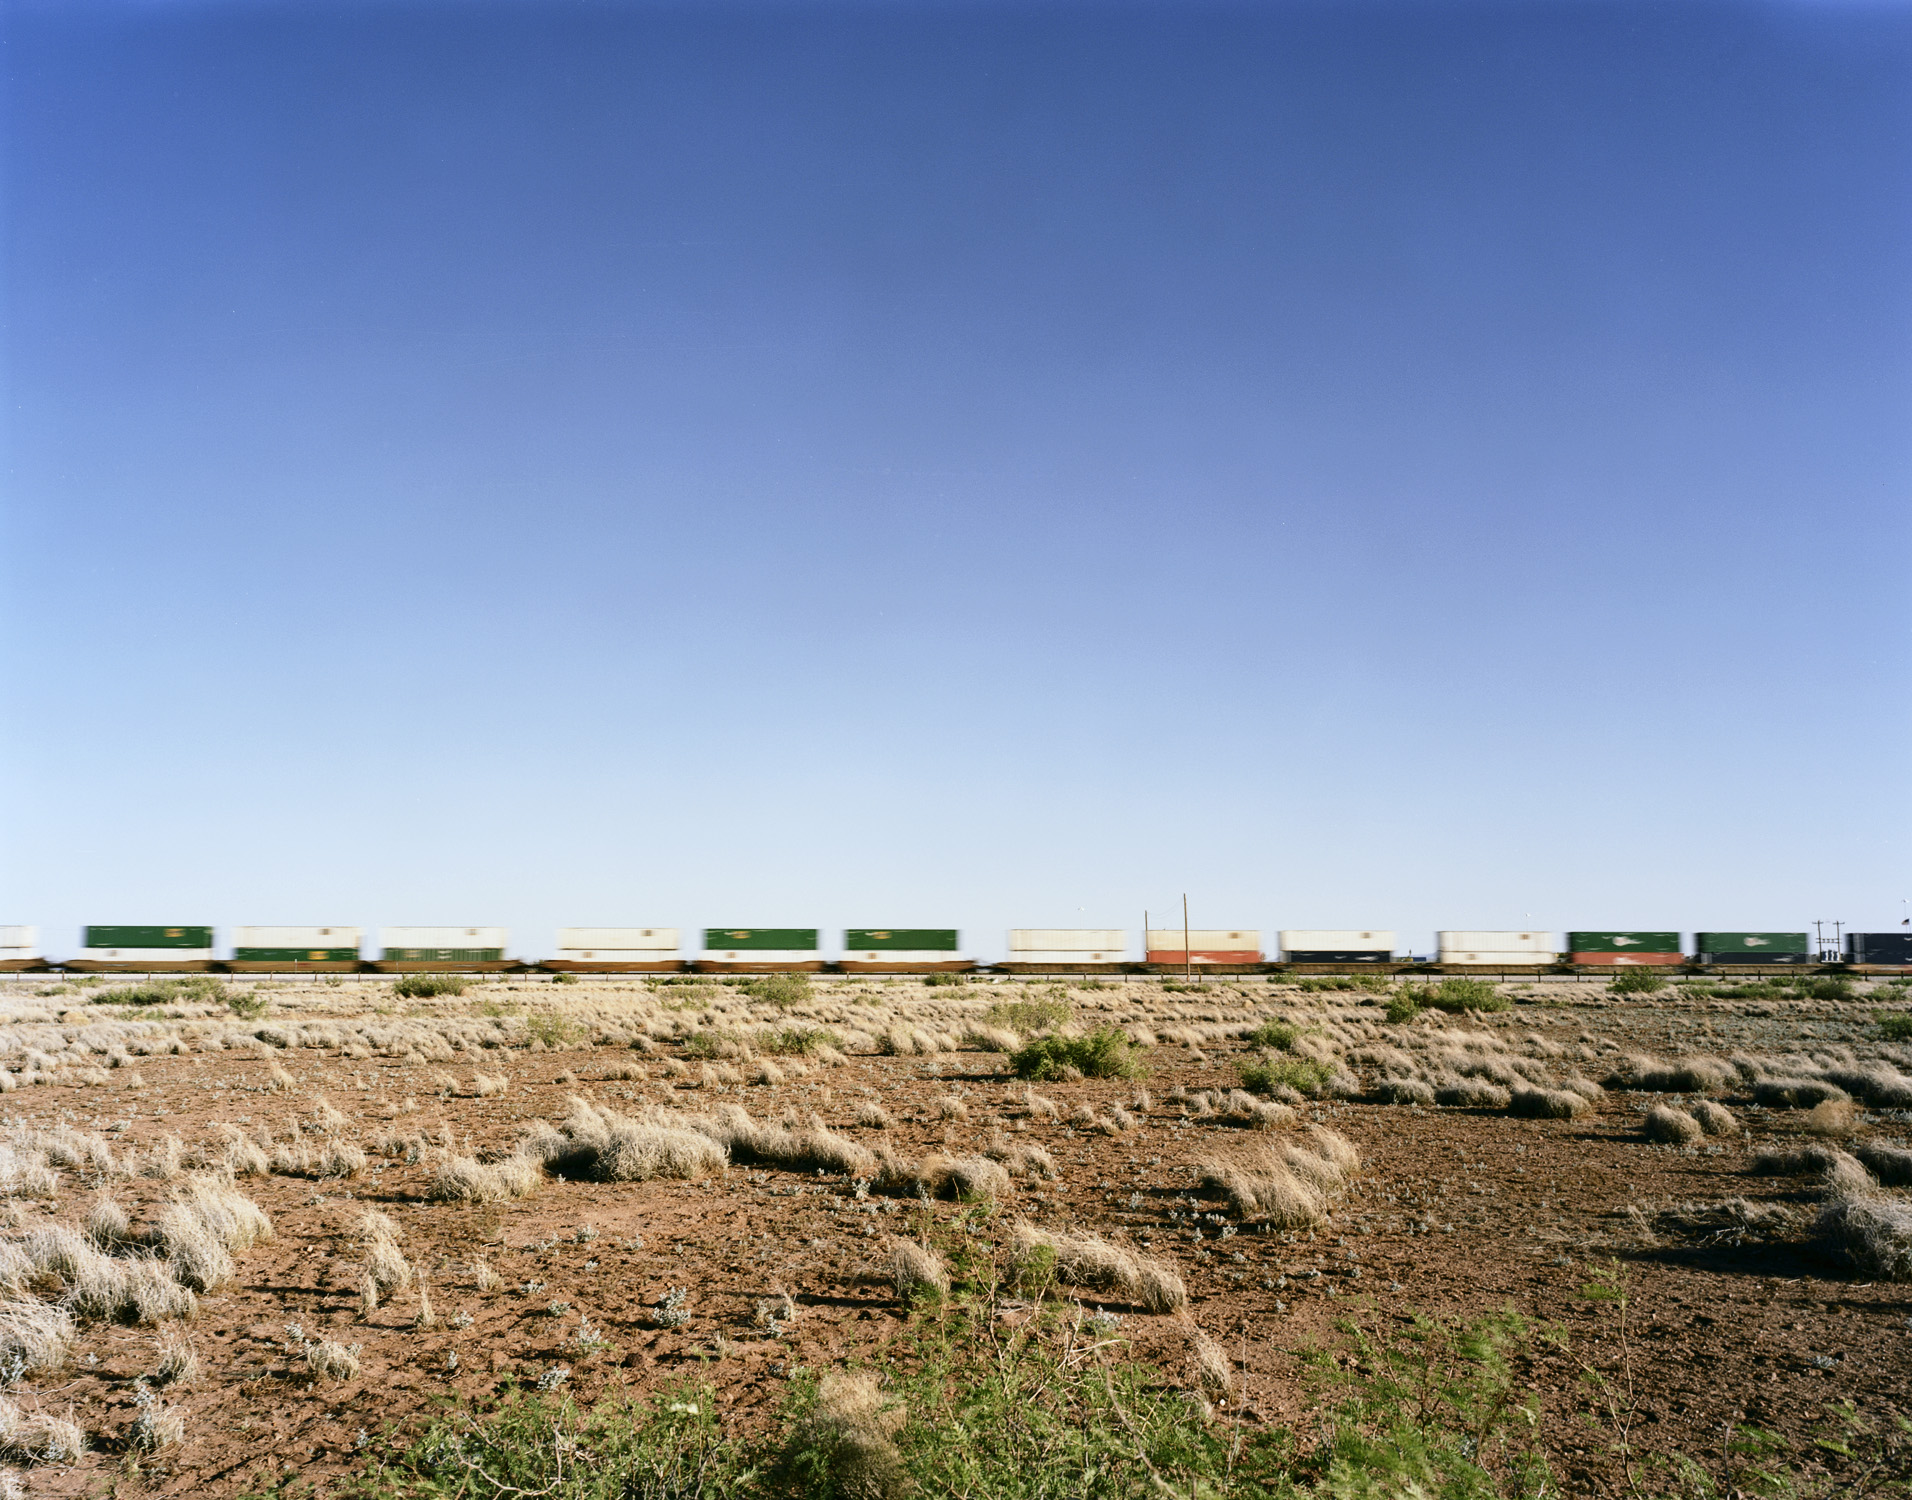 Untitled, Near Deming, New Mexico, 2012